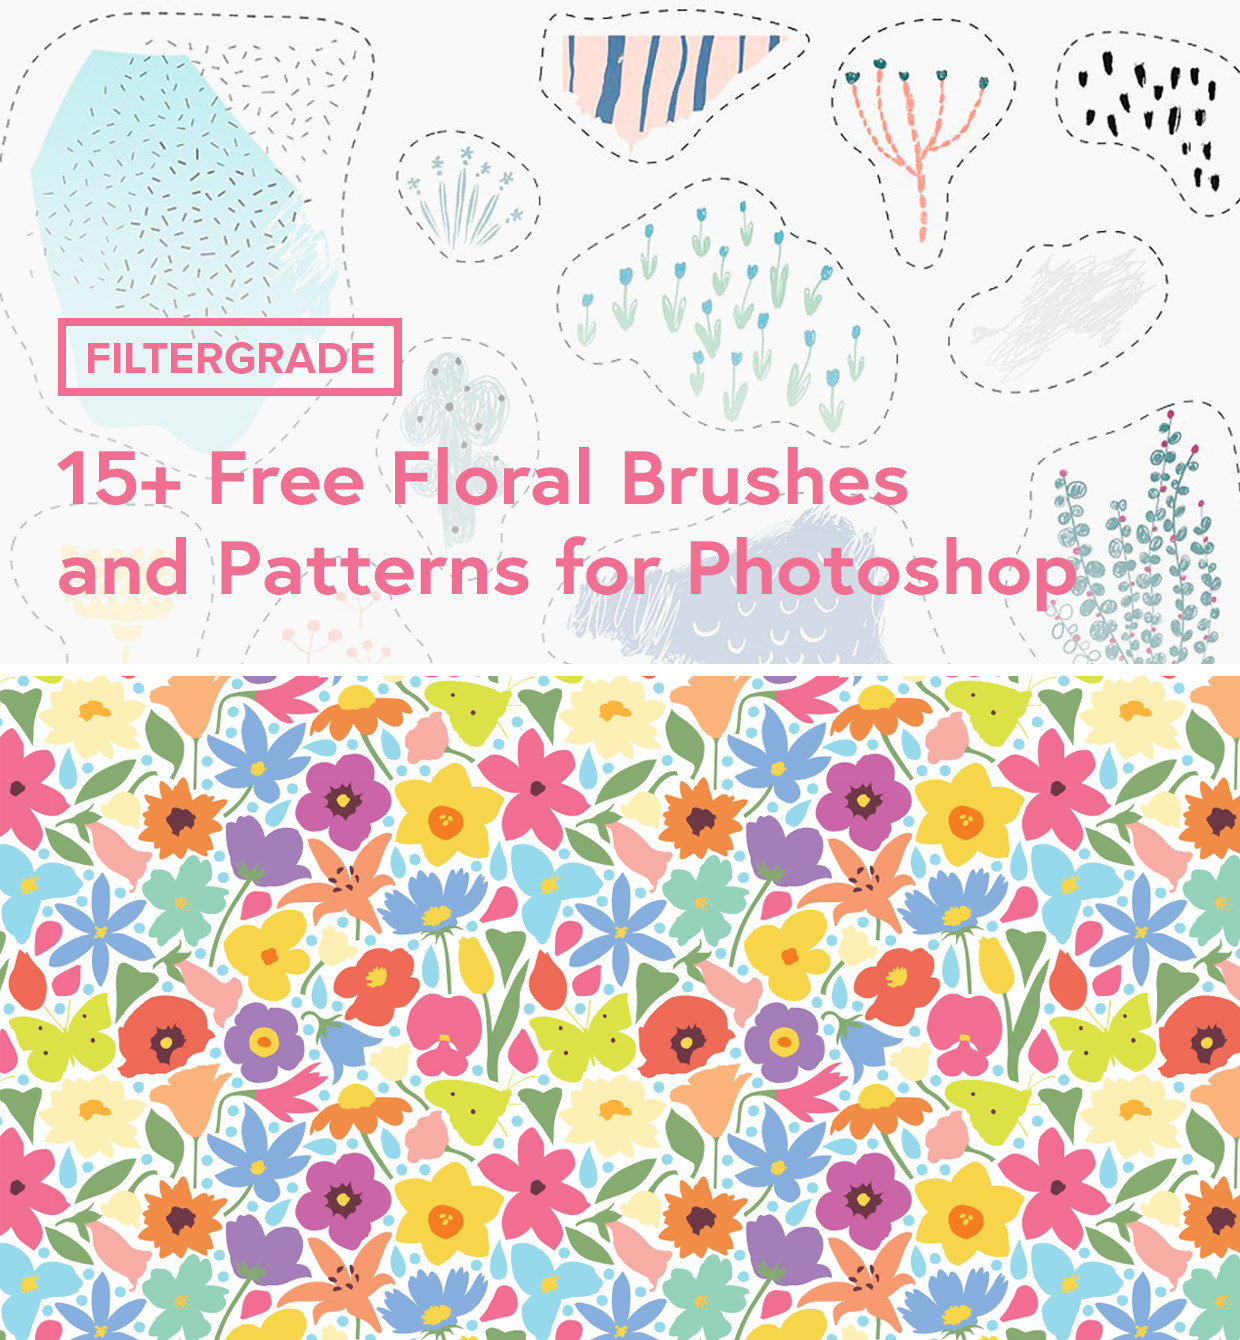 Floral designs and free floral brushes/patterns for Photoshop.